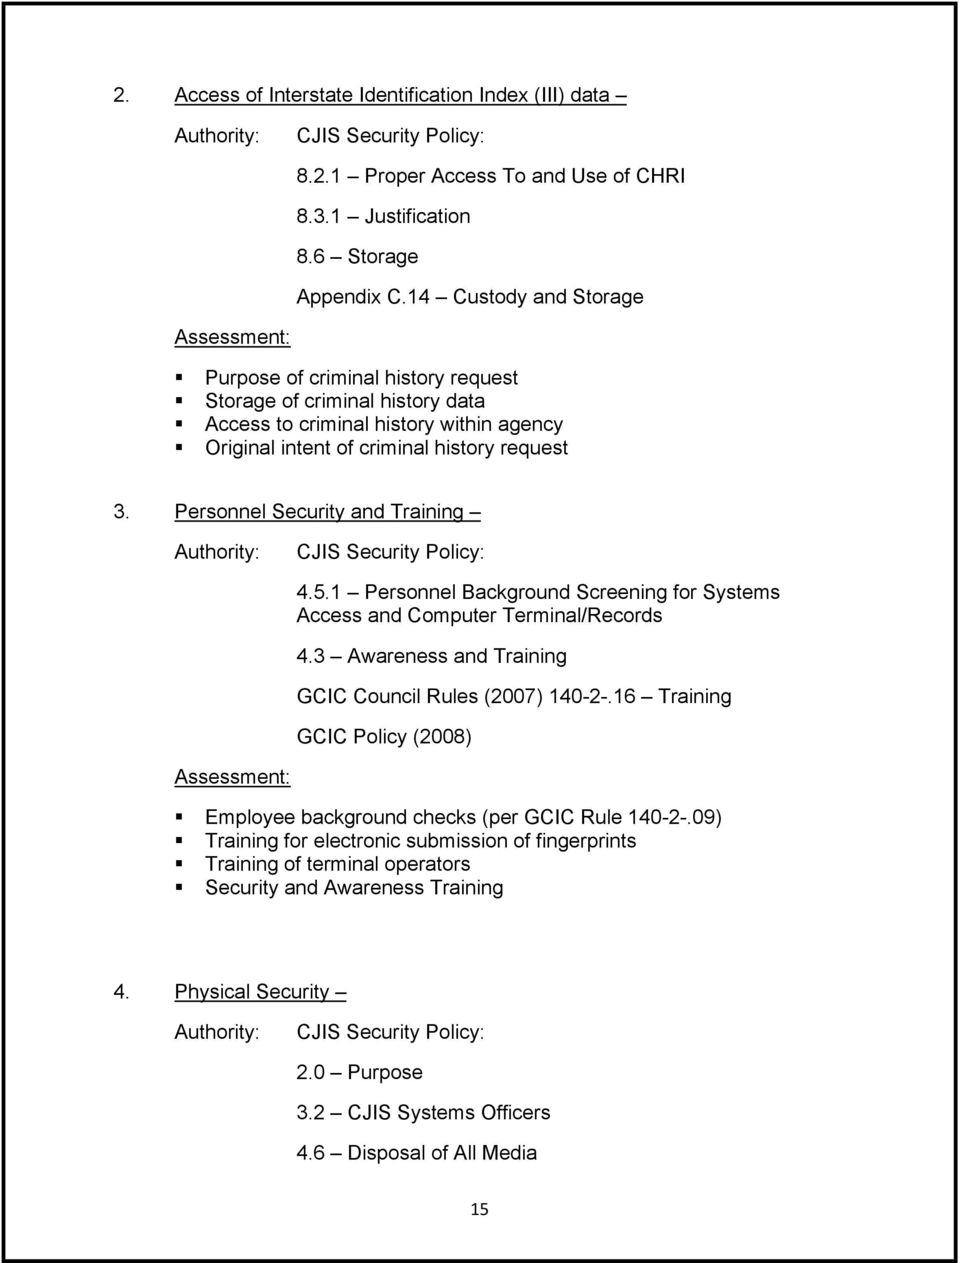 Personnel Security and Training Authority: CJIS Security Policy: 4.5.1 Personnel Background Screening for Systems Access and Computer Terminal/Records 4.